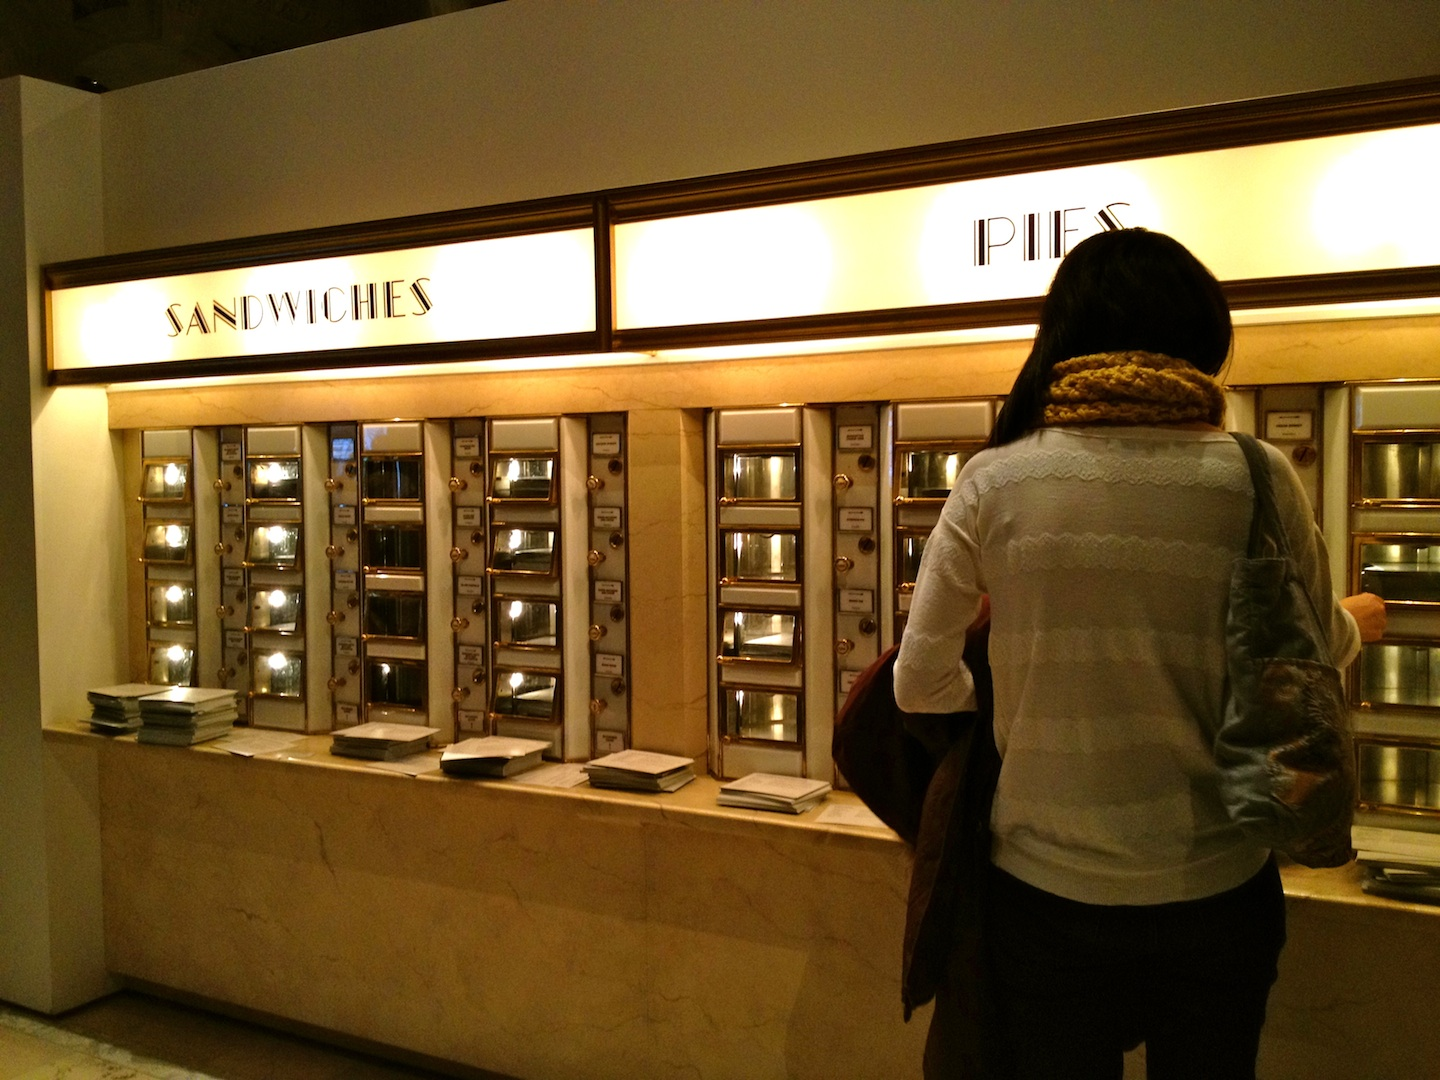 ... automat horn hardart opened their first new york city automat in